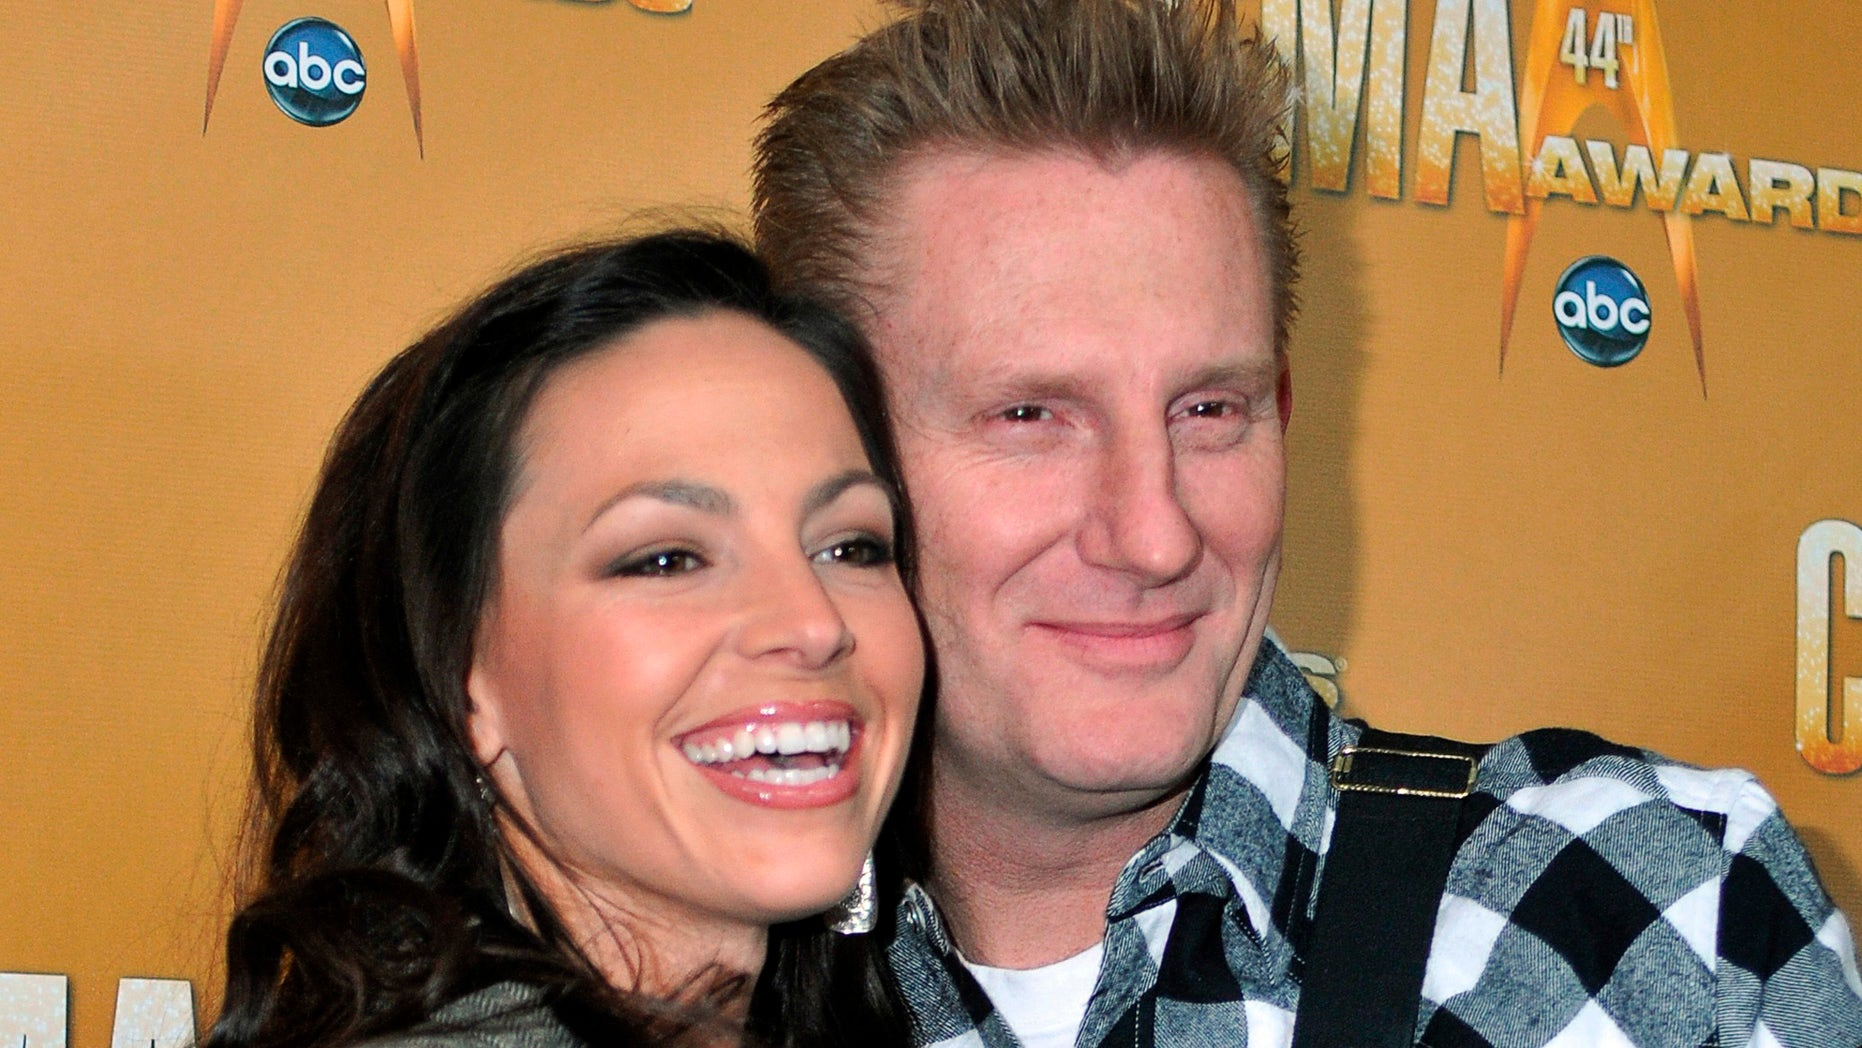 Joey + Rory arrive at the 44th annual Country Music Association Awards in Nashville, Tennessee November 10, 2010.